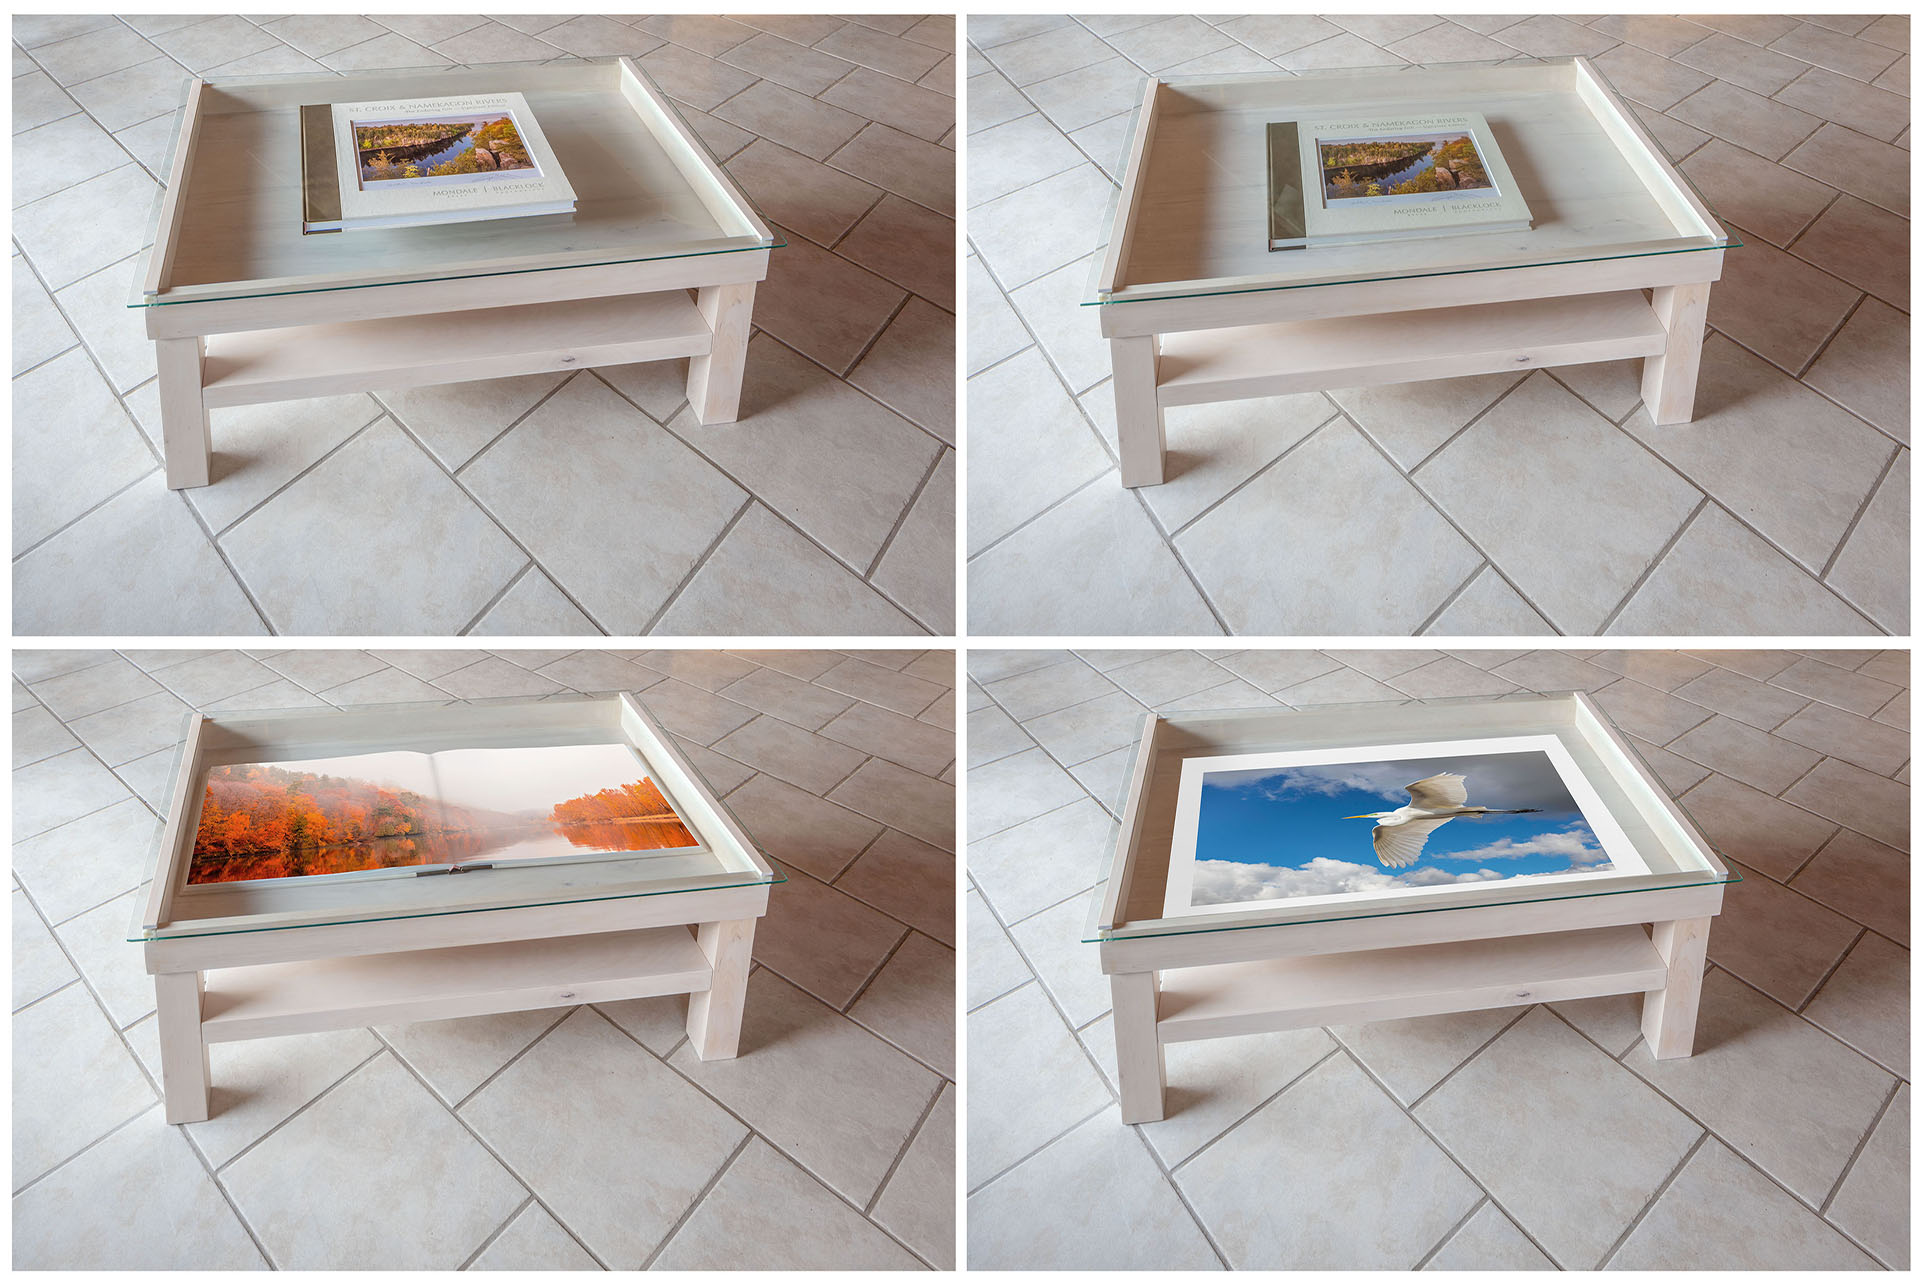 St Croix graphy Display coffee table